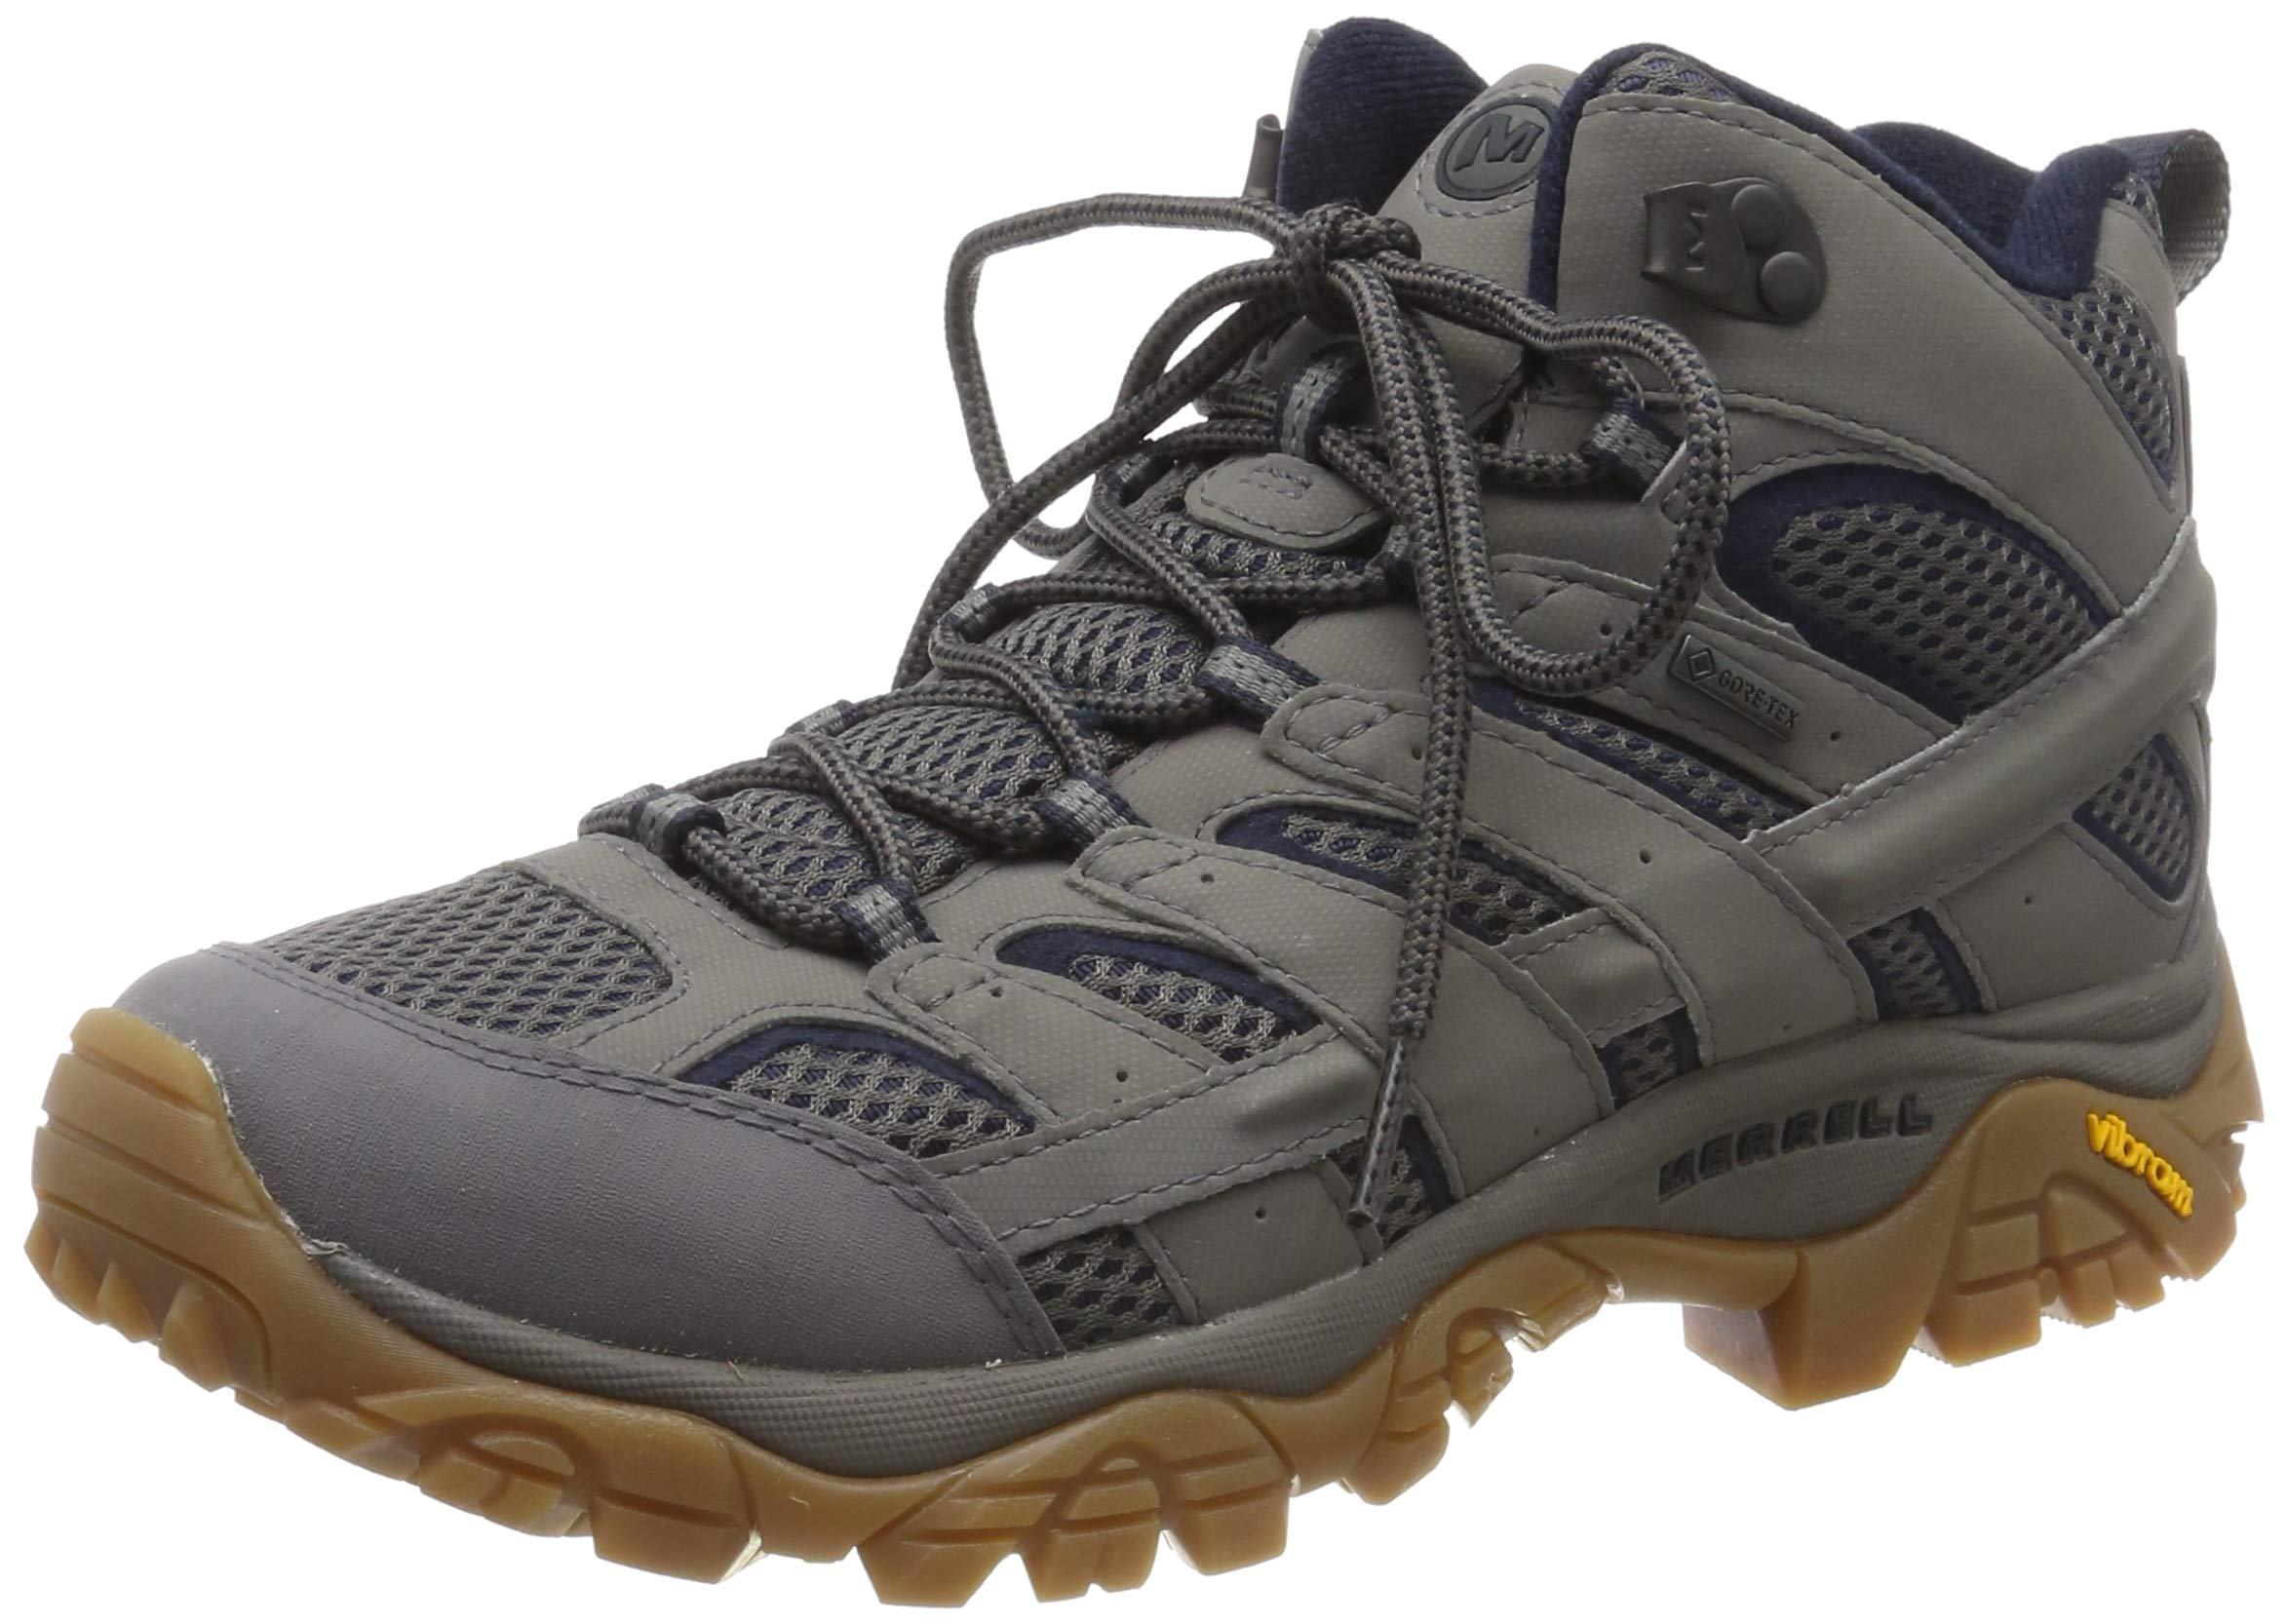 Merrell Men's Moab 2 Mid Gore-tex High Rise Hiking Boots 1